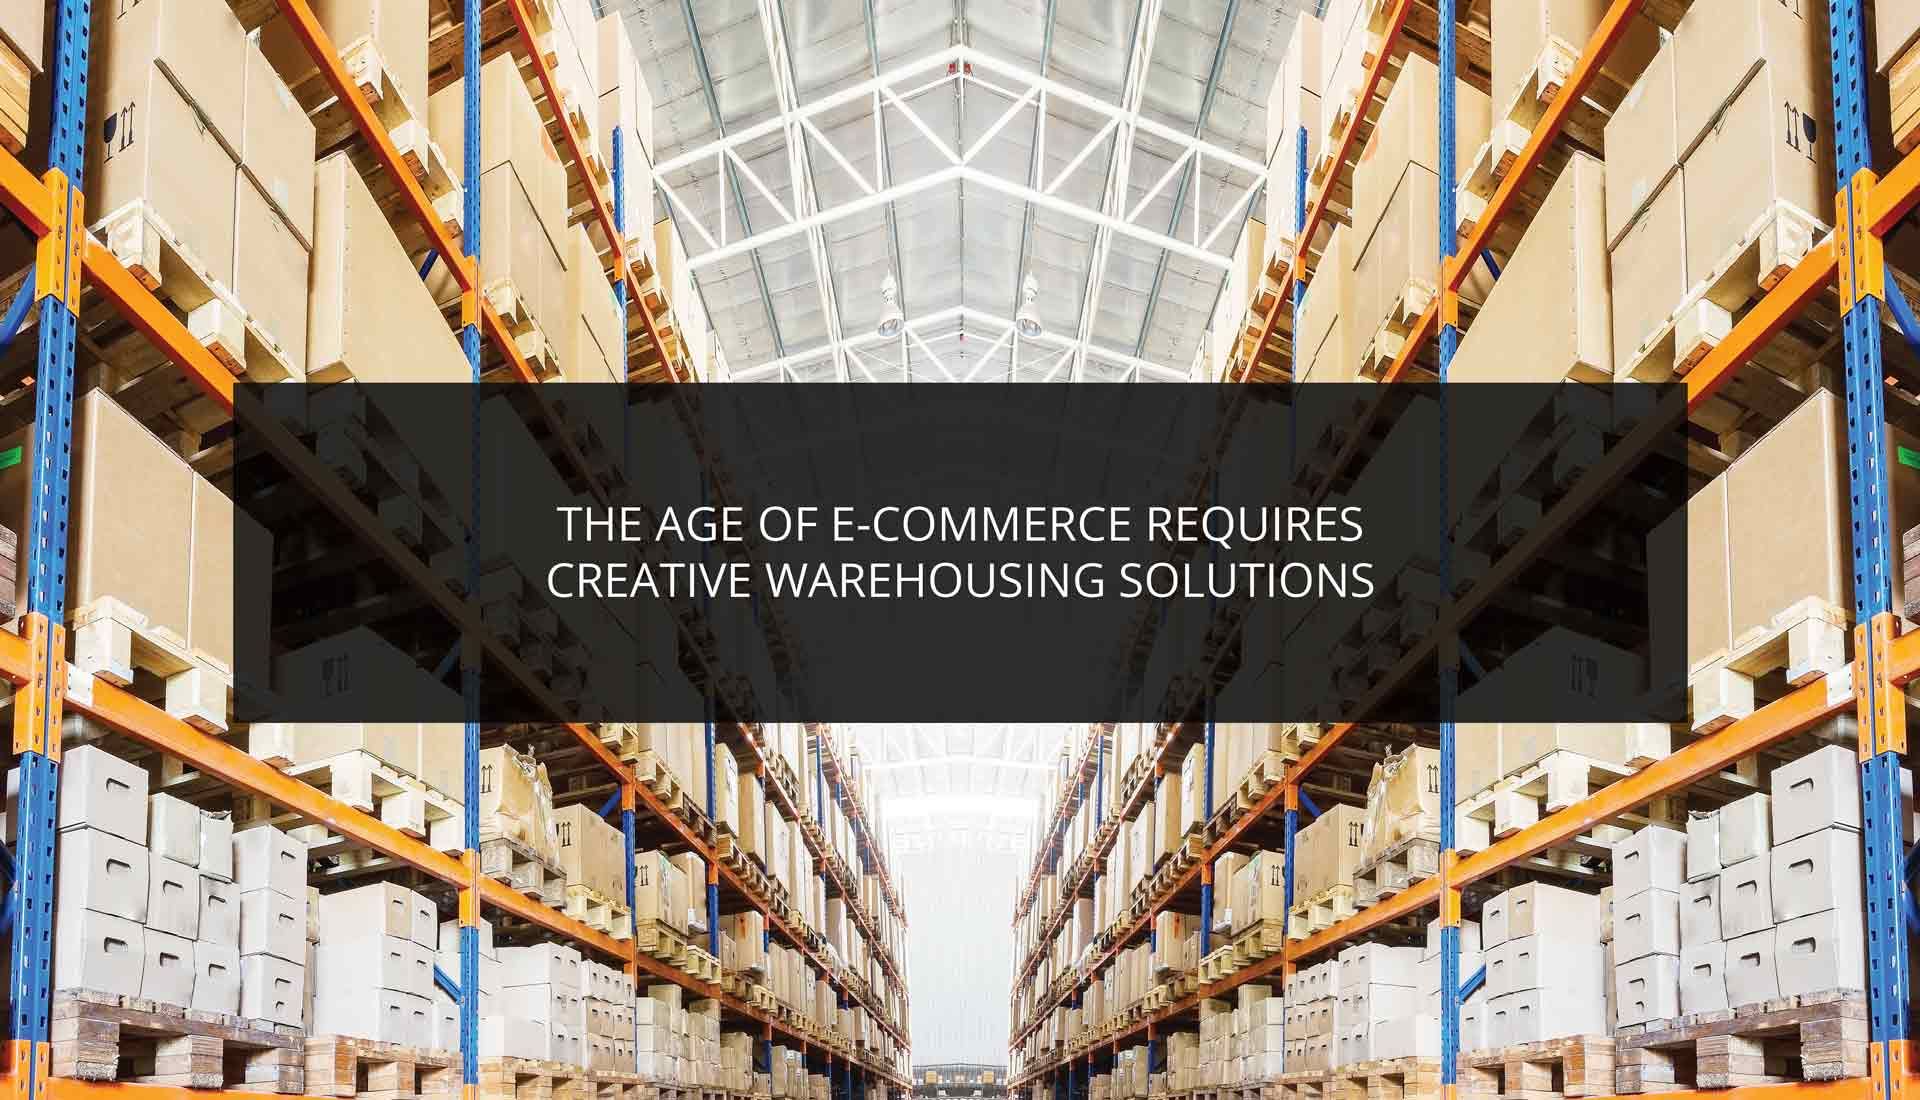 The Age of E-Commerce Requires Creative Warehousing Solutions